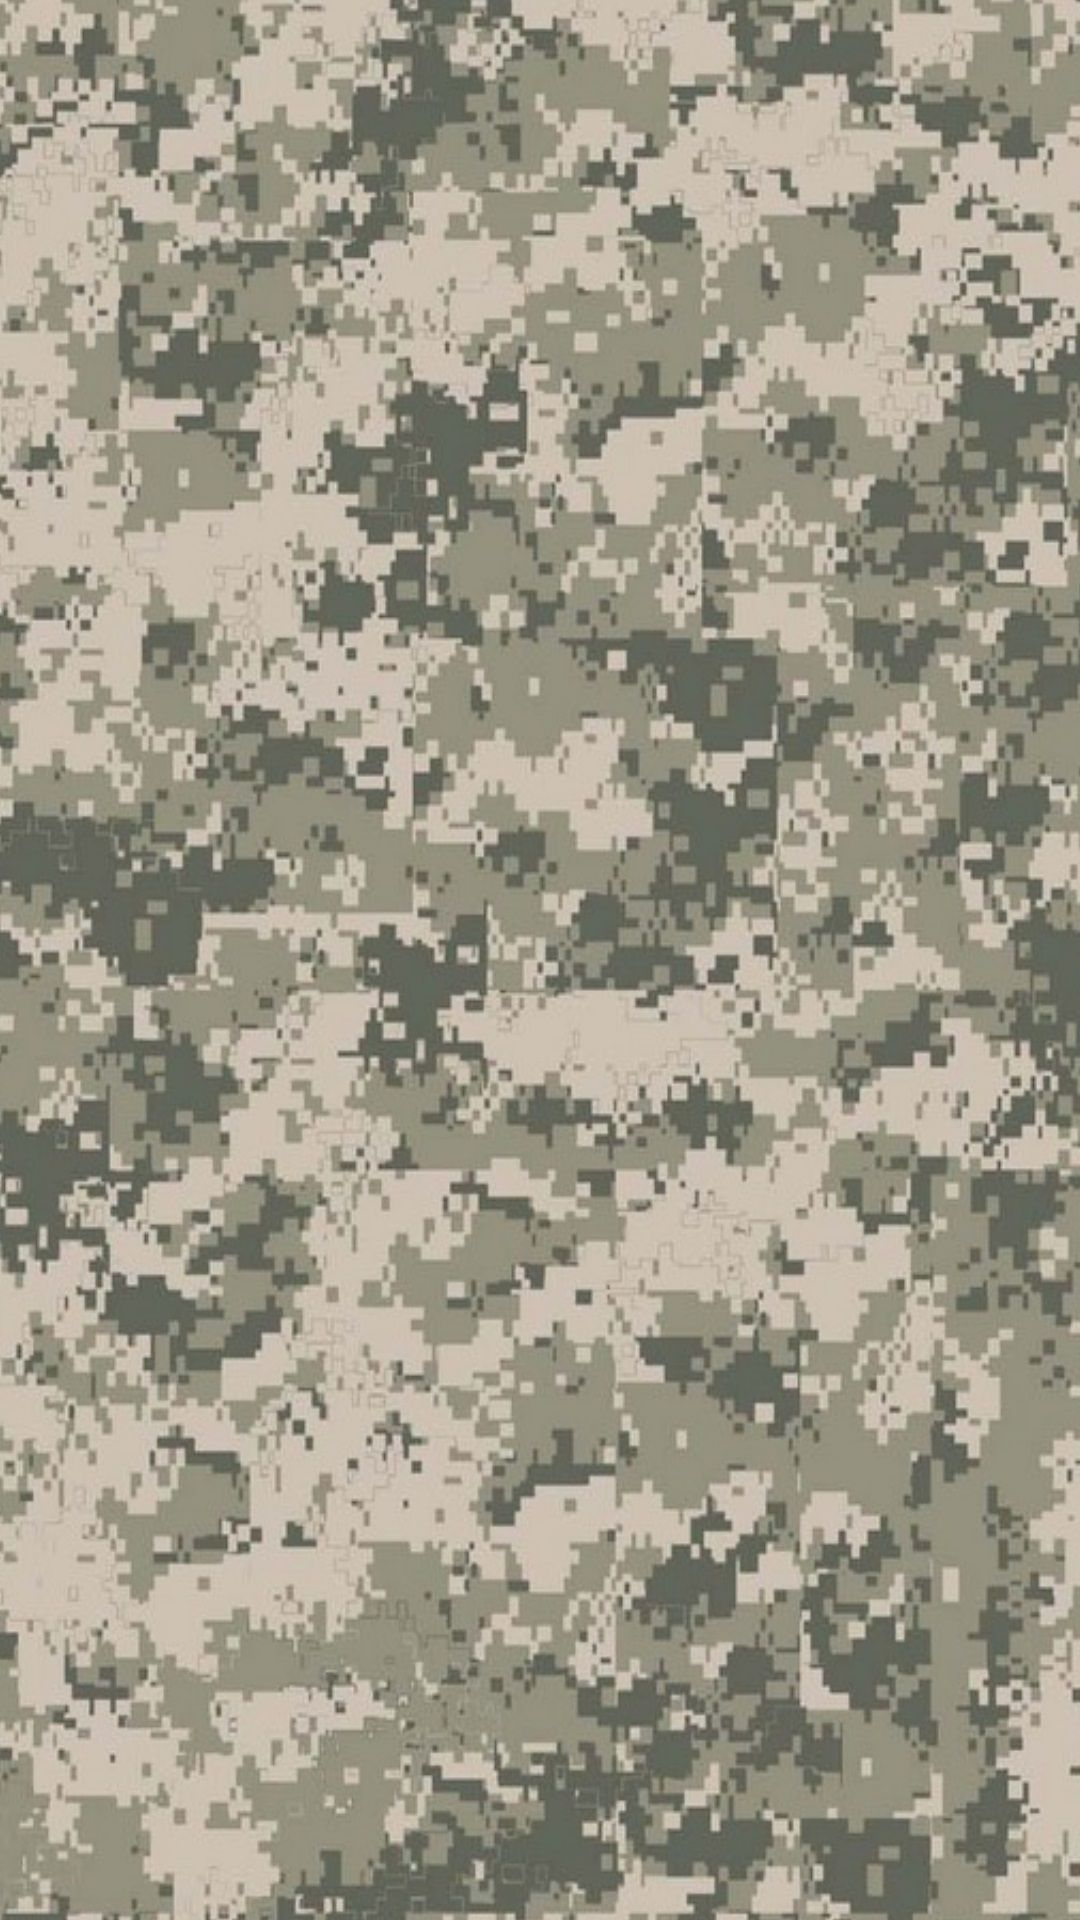 Camouflage Wallpapers Android Apps On Google Play Camouflage Wallpaper Camoflauge Wallpaper Camo Wallpaper